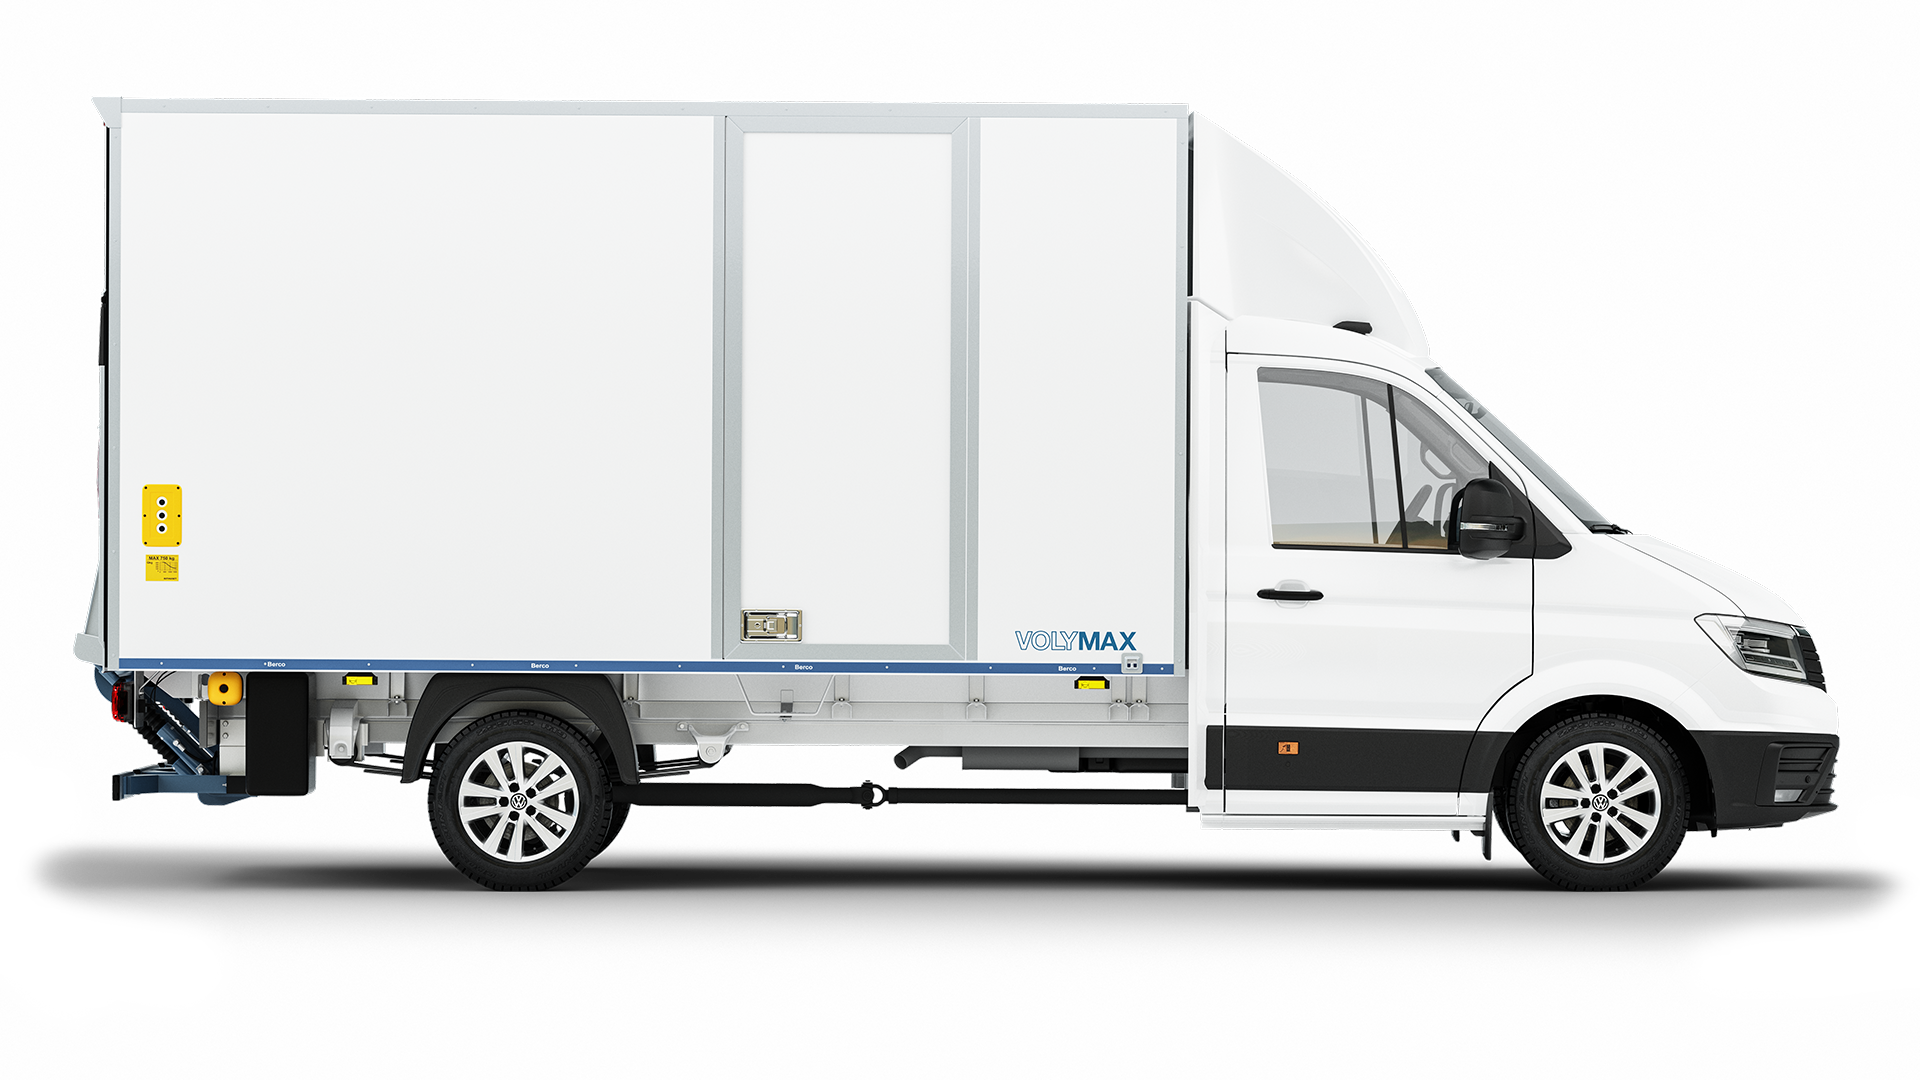 VW Crafter 18 m3